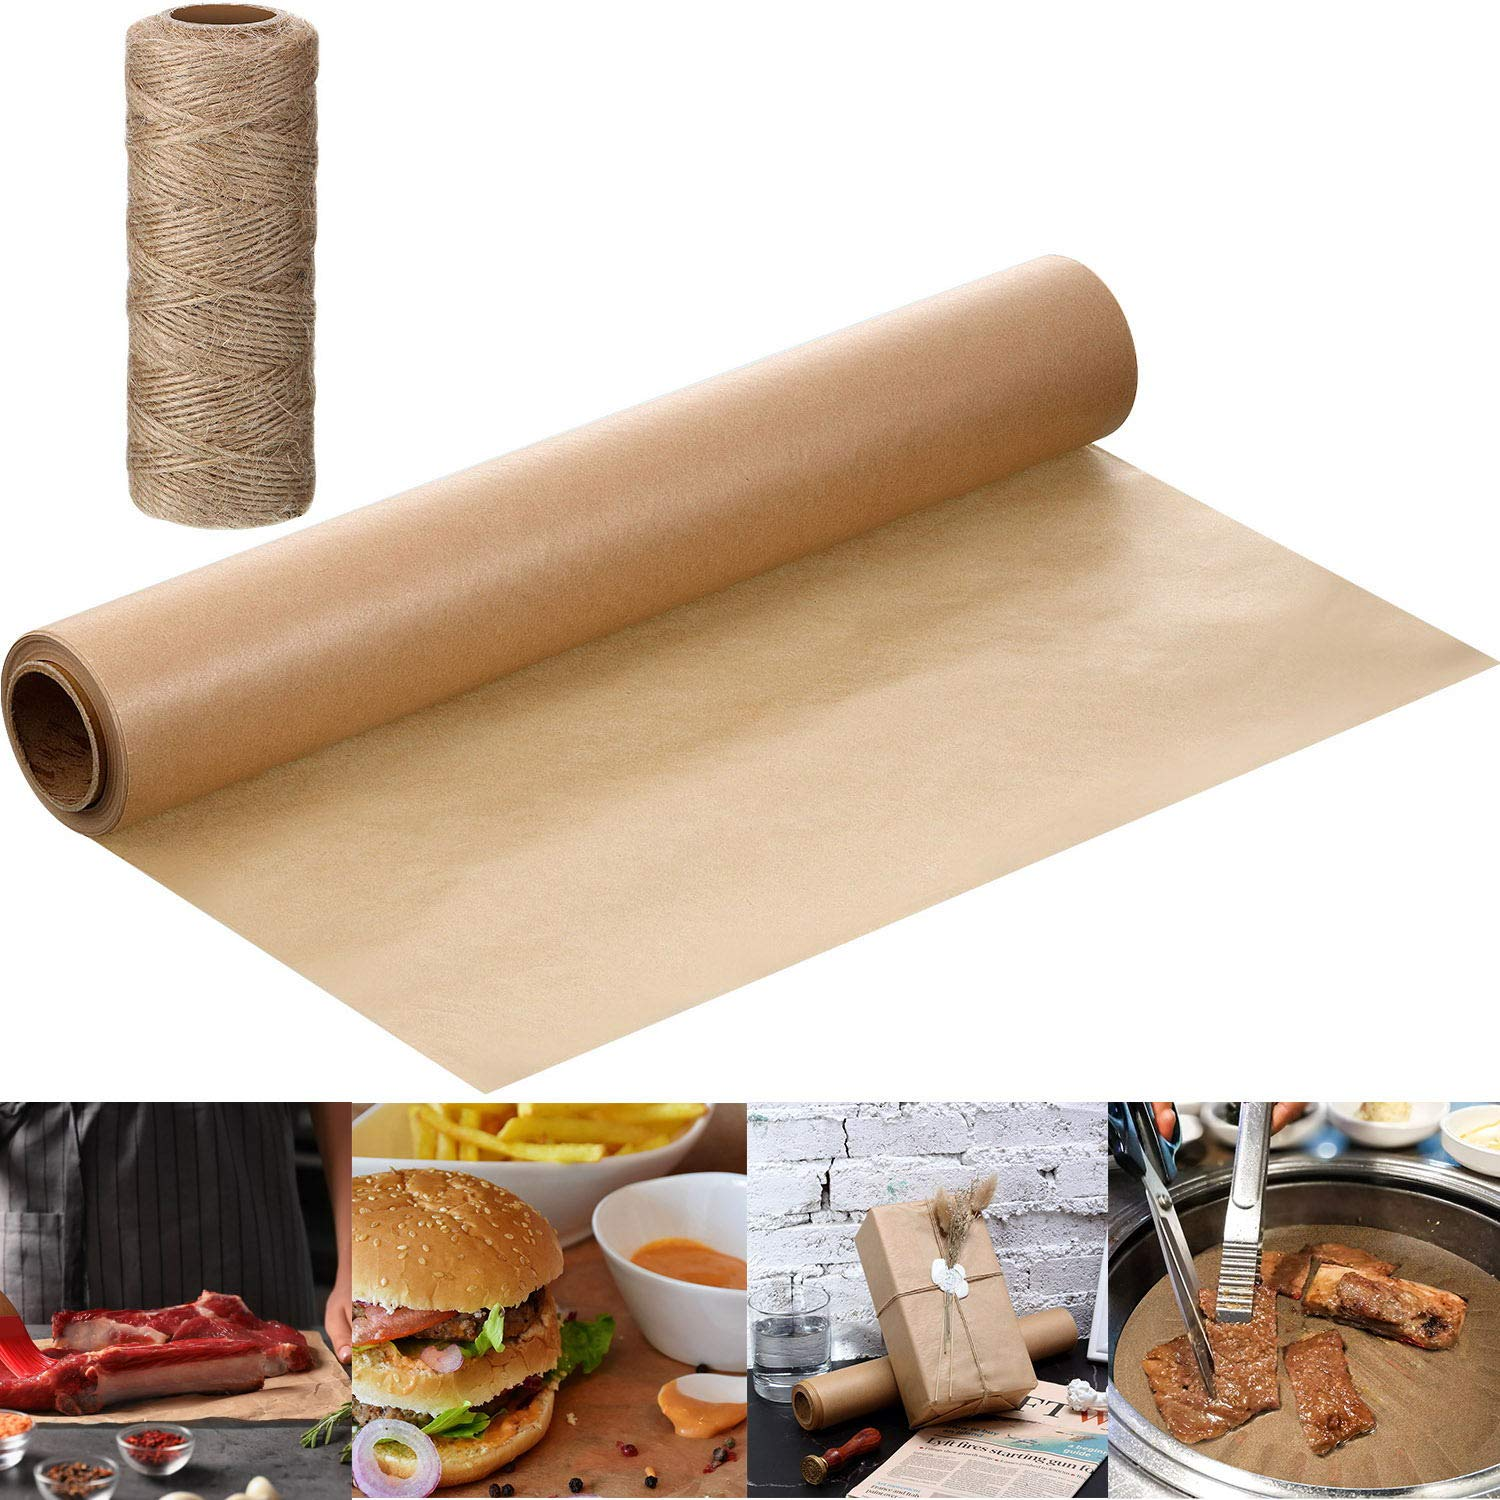 12 Inch x 65 Feet Kraft Butcher Paper Roll, Wrapping Paper for Wrapping, Packaging Gift, Writing, BBQ Briskets, Wrapping Meats, with 50m Cord (Brown)